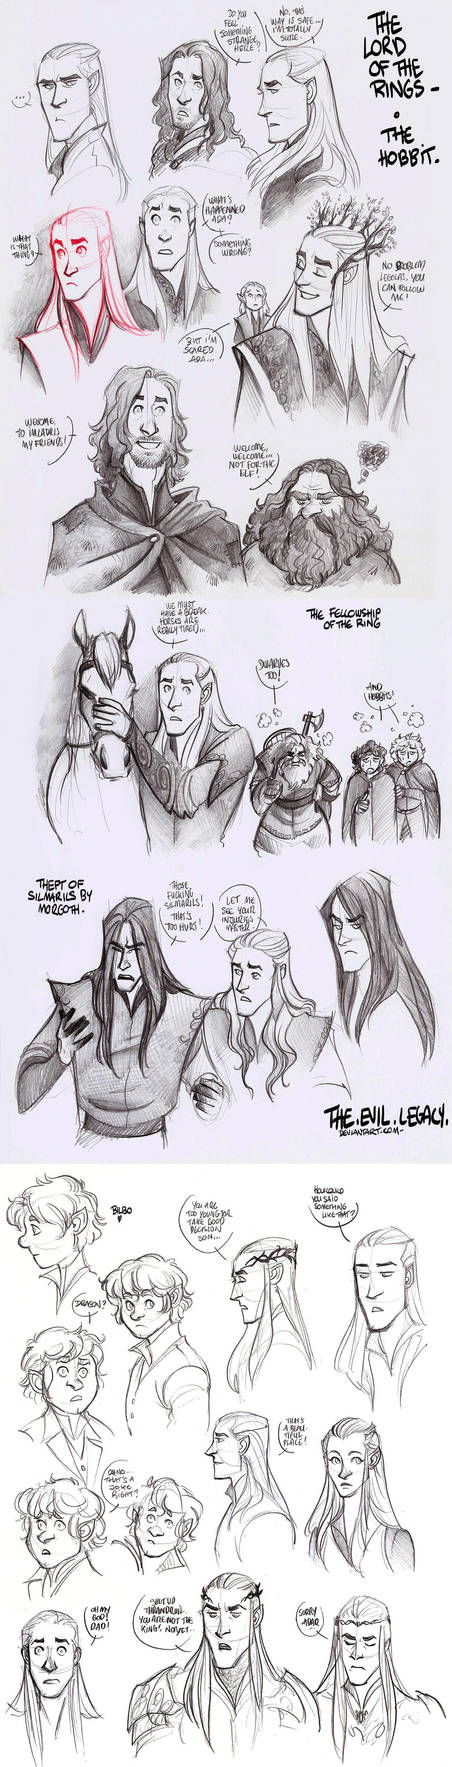 LOTR - lotst of elves by the-evil-legacy